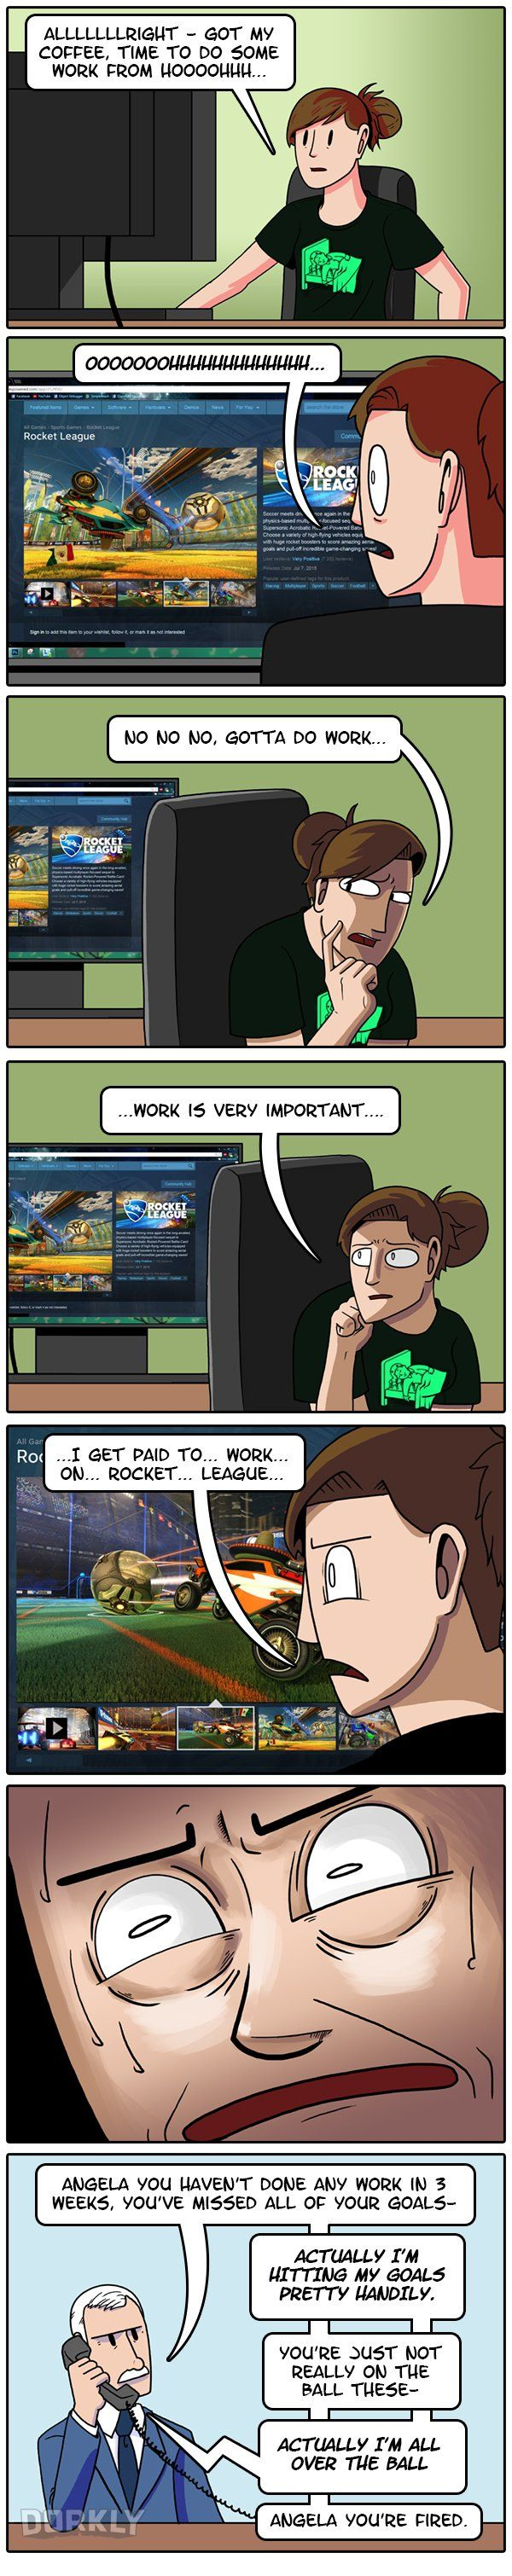 Working from Home: The Struggle #dorkly #comics #rocketleague